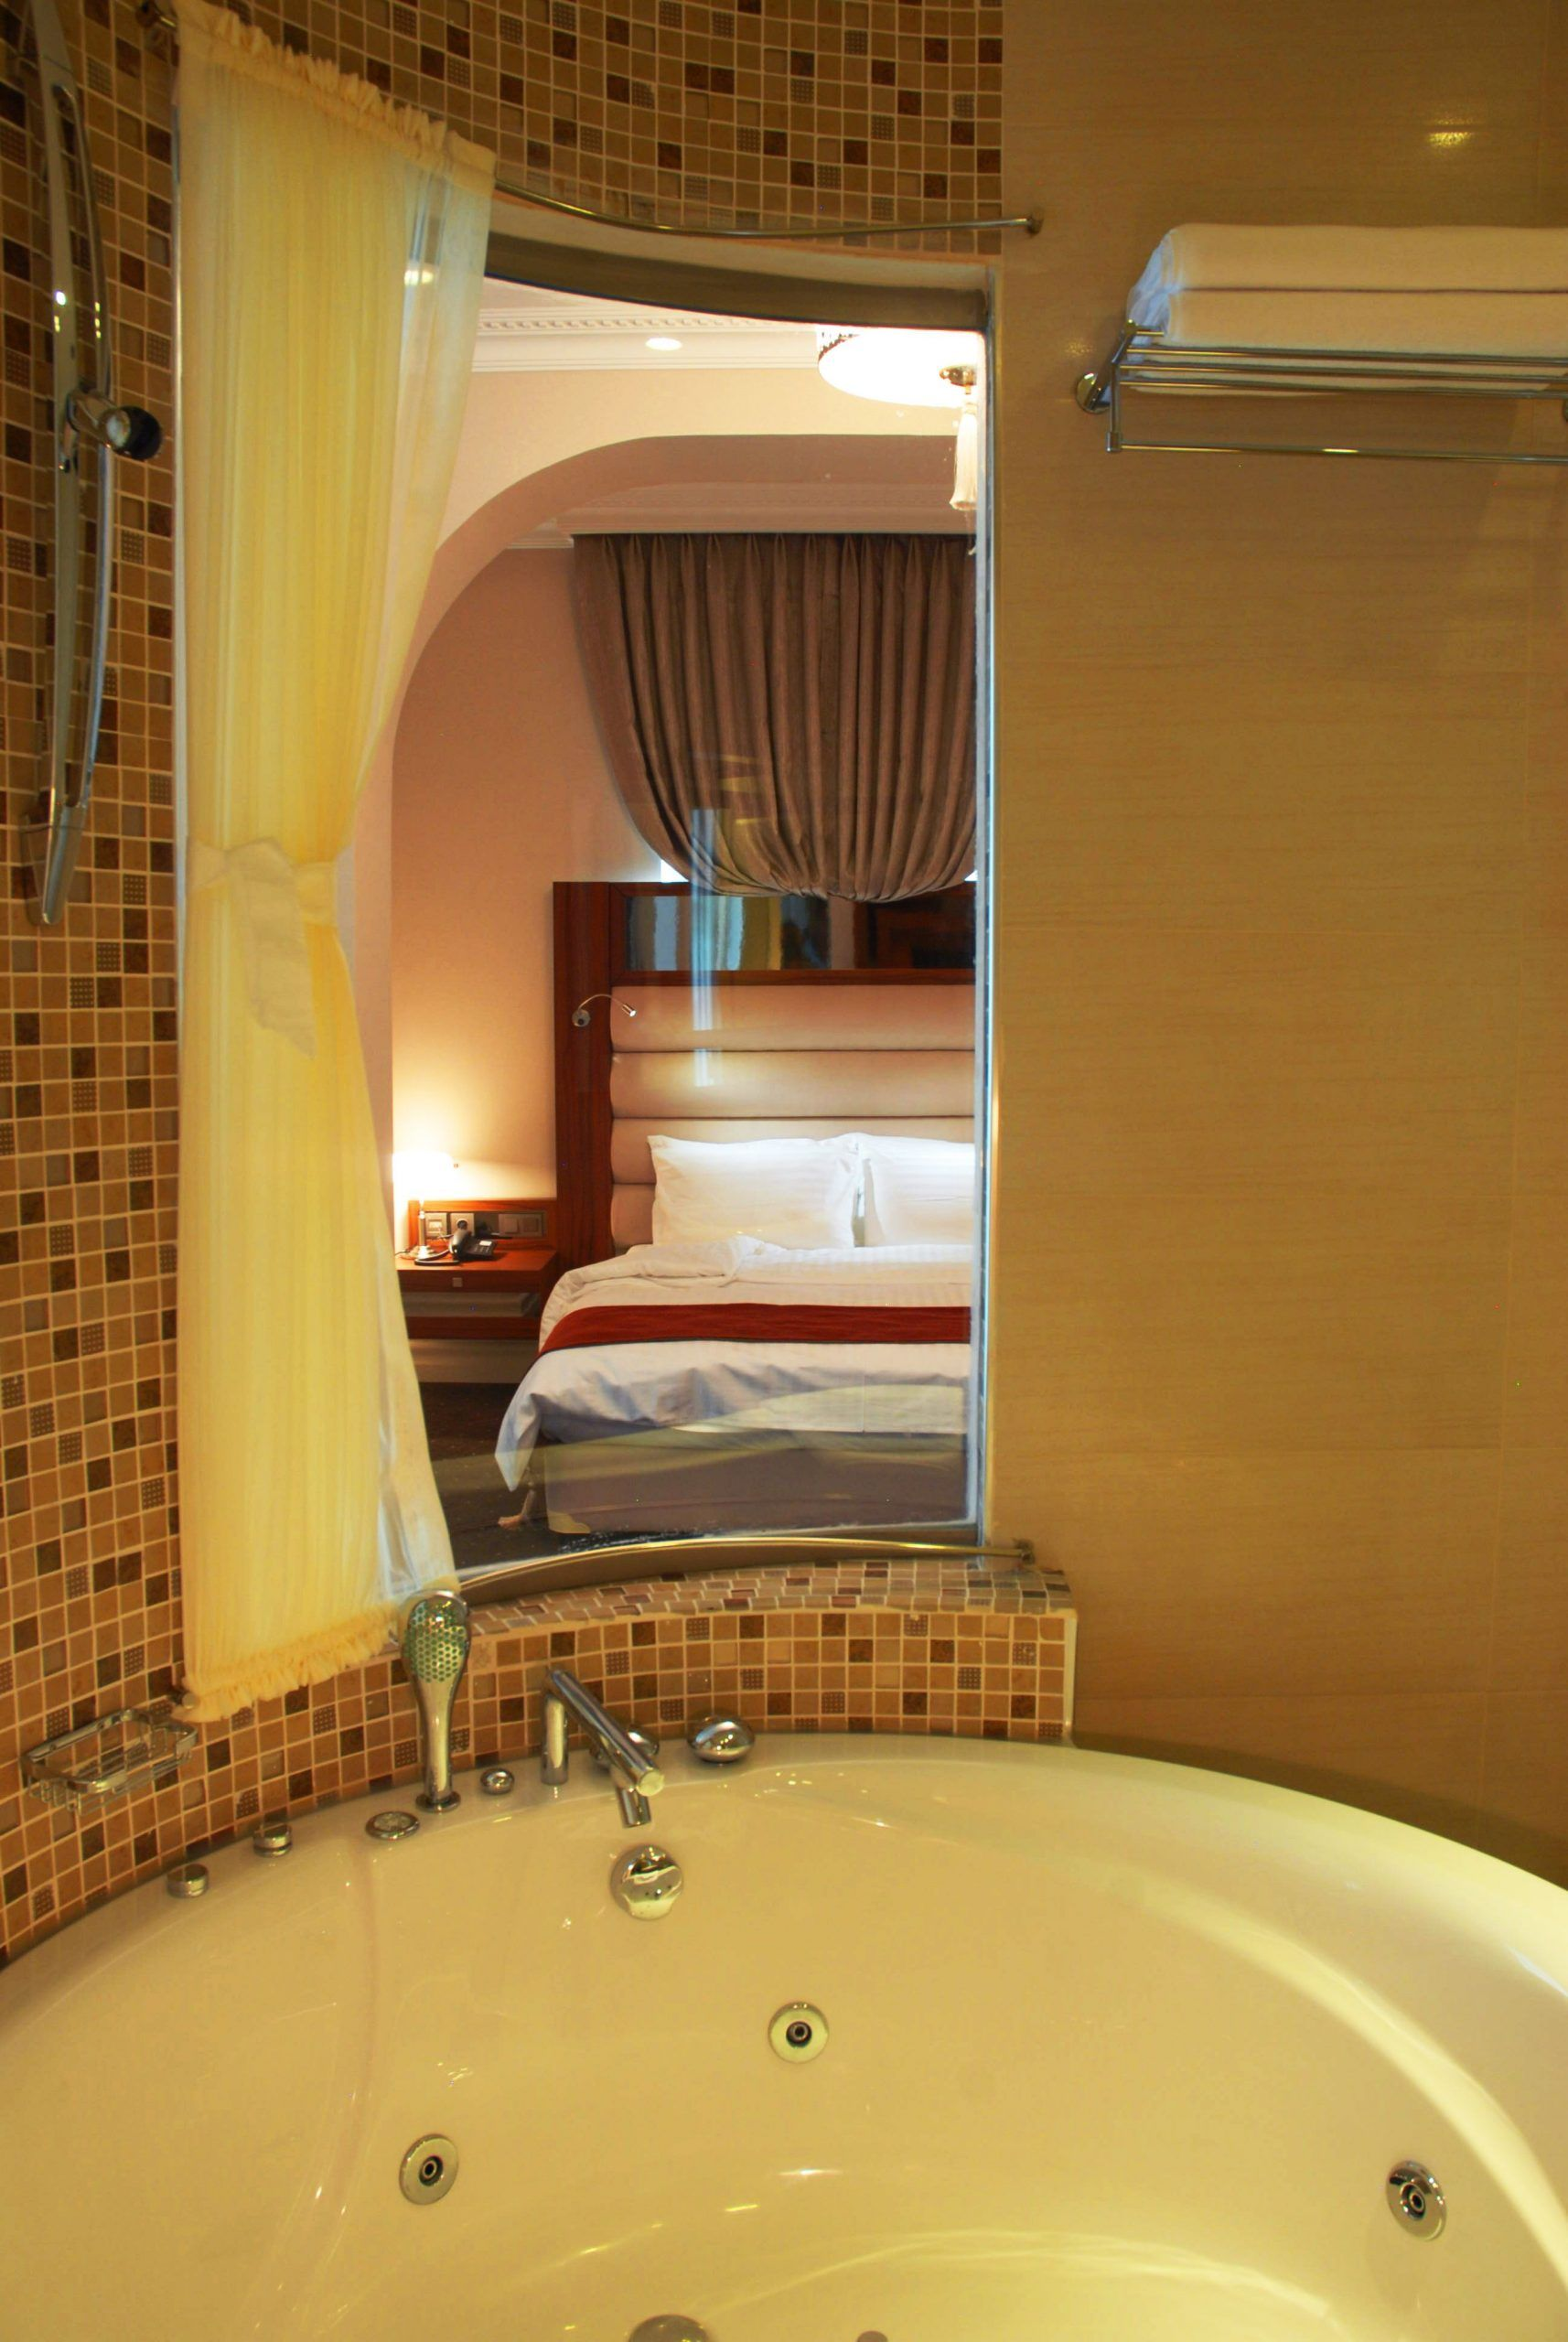 Jacuzzi in Suite Room Gallery in 2020 Jacuzzi, Red rooms